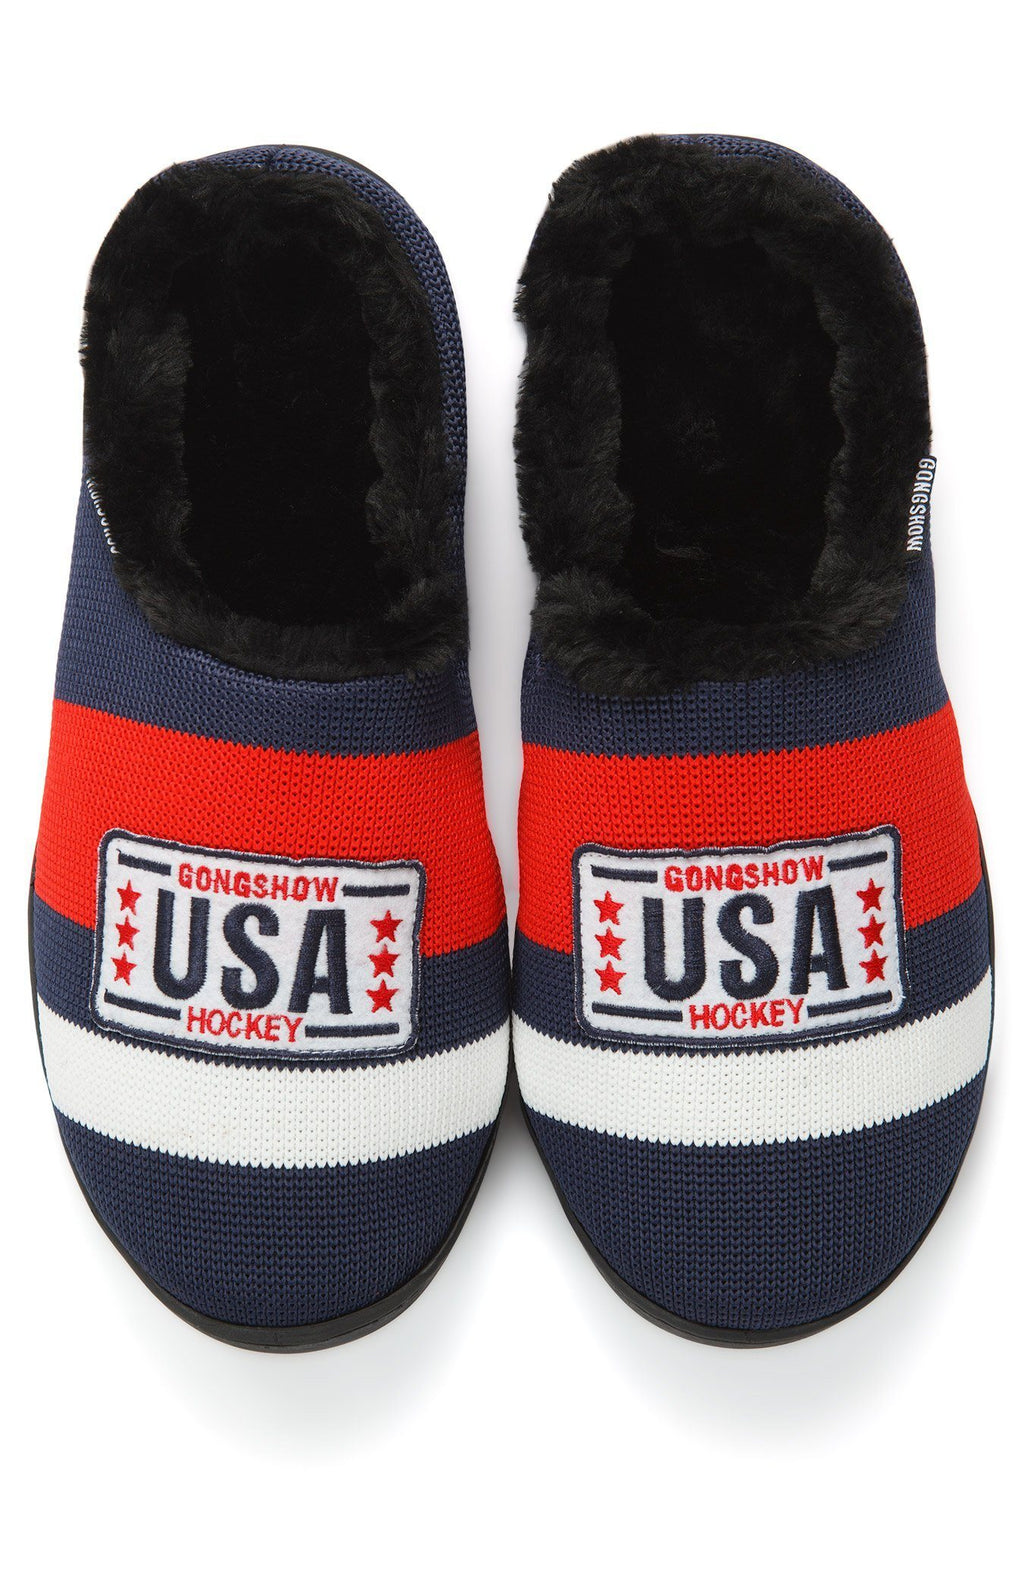 Gongshow Slippers USA